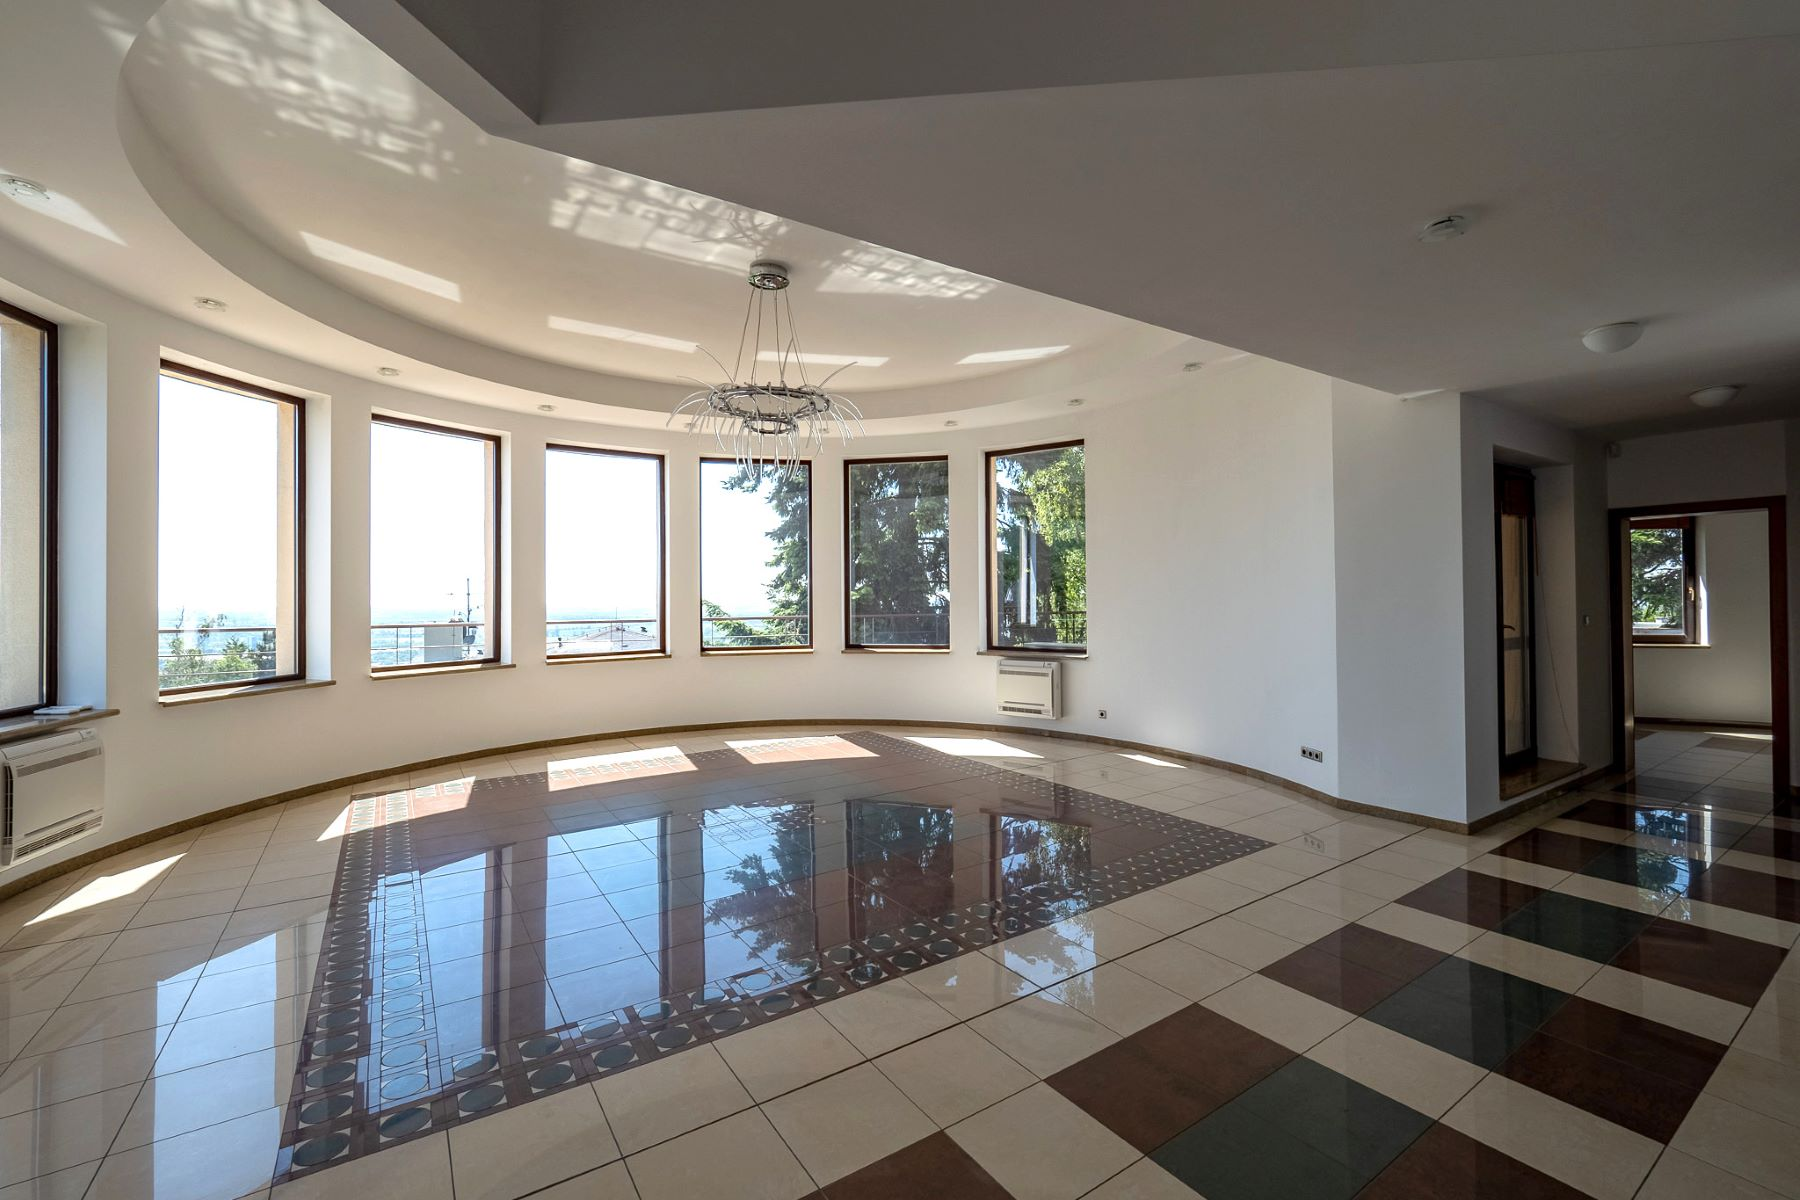 Single Family Homes for Sale at Castle-like Villa in a quiet area of Bratislava-Raca Other Slovakia, Other Areas In Slovakia Slovakia